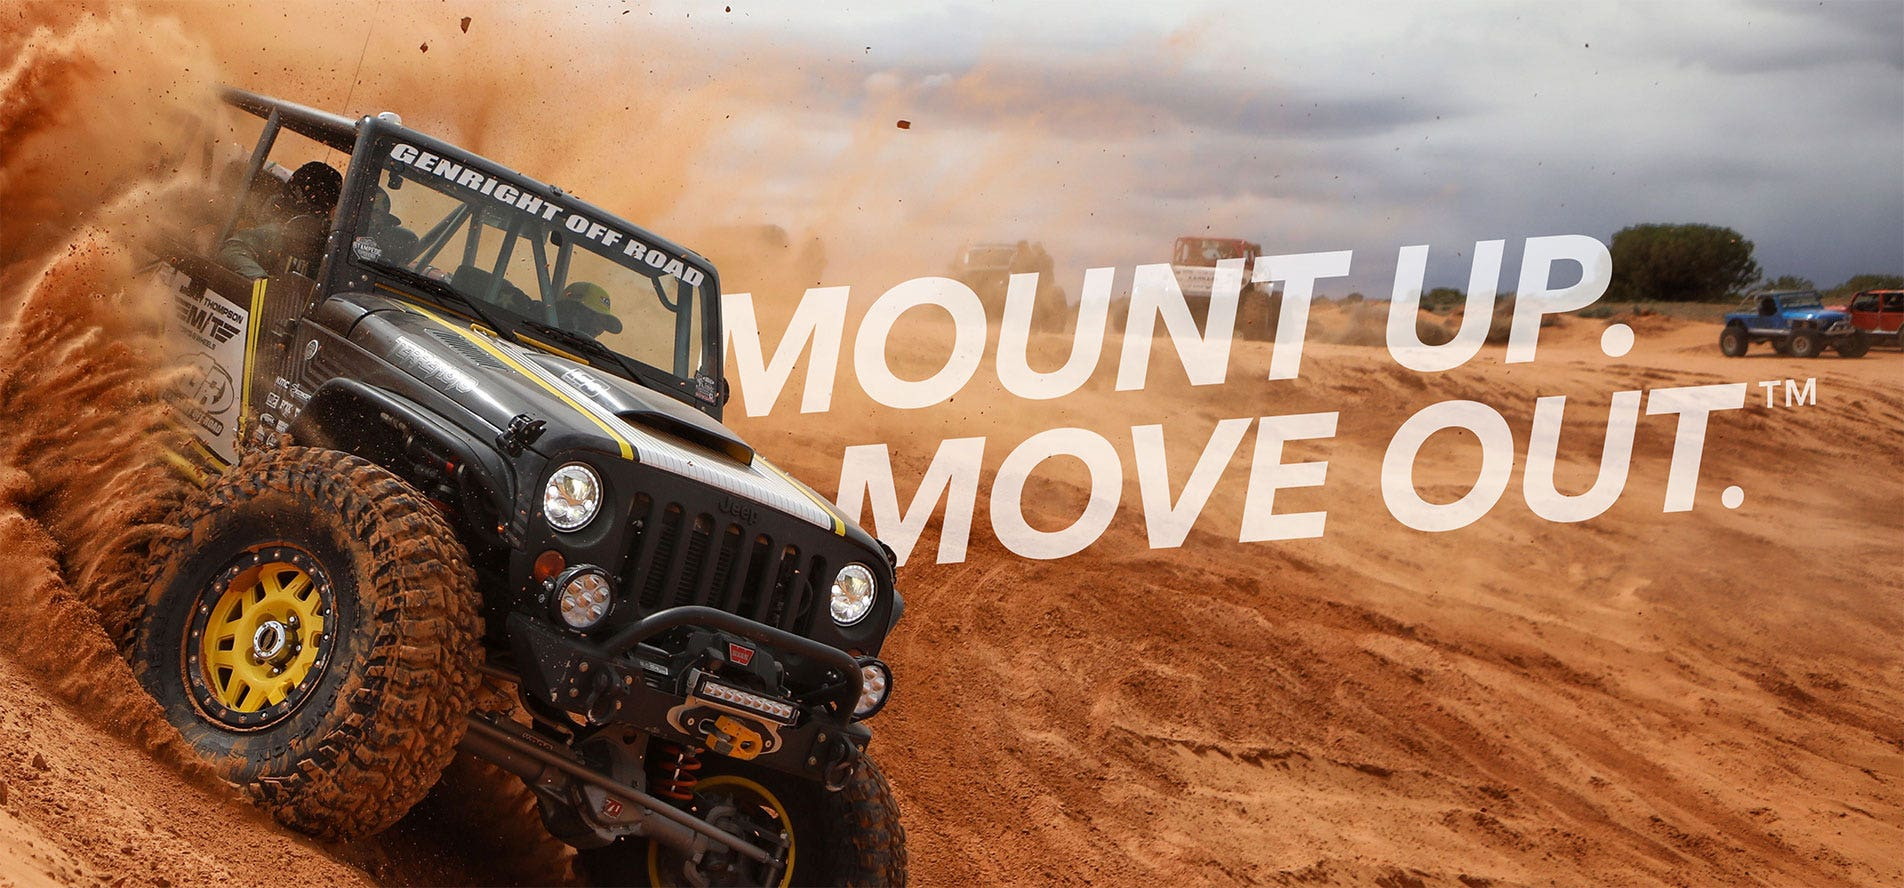 Mount Up. Move Out. UTV/SxS/ATV handle grip powersports accessory